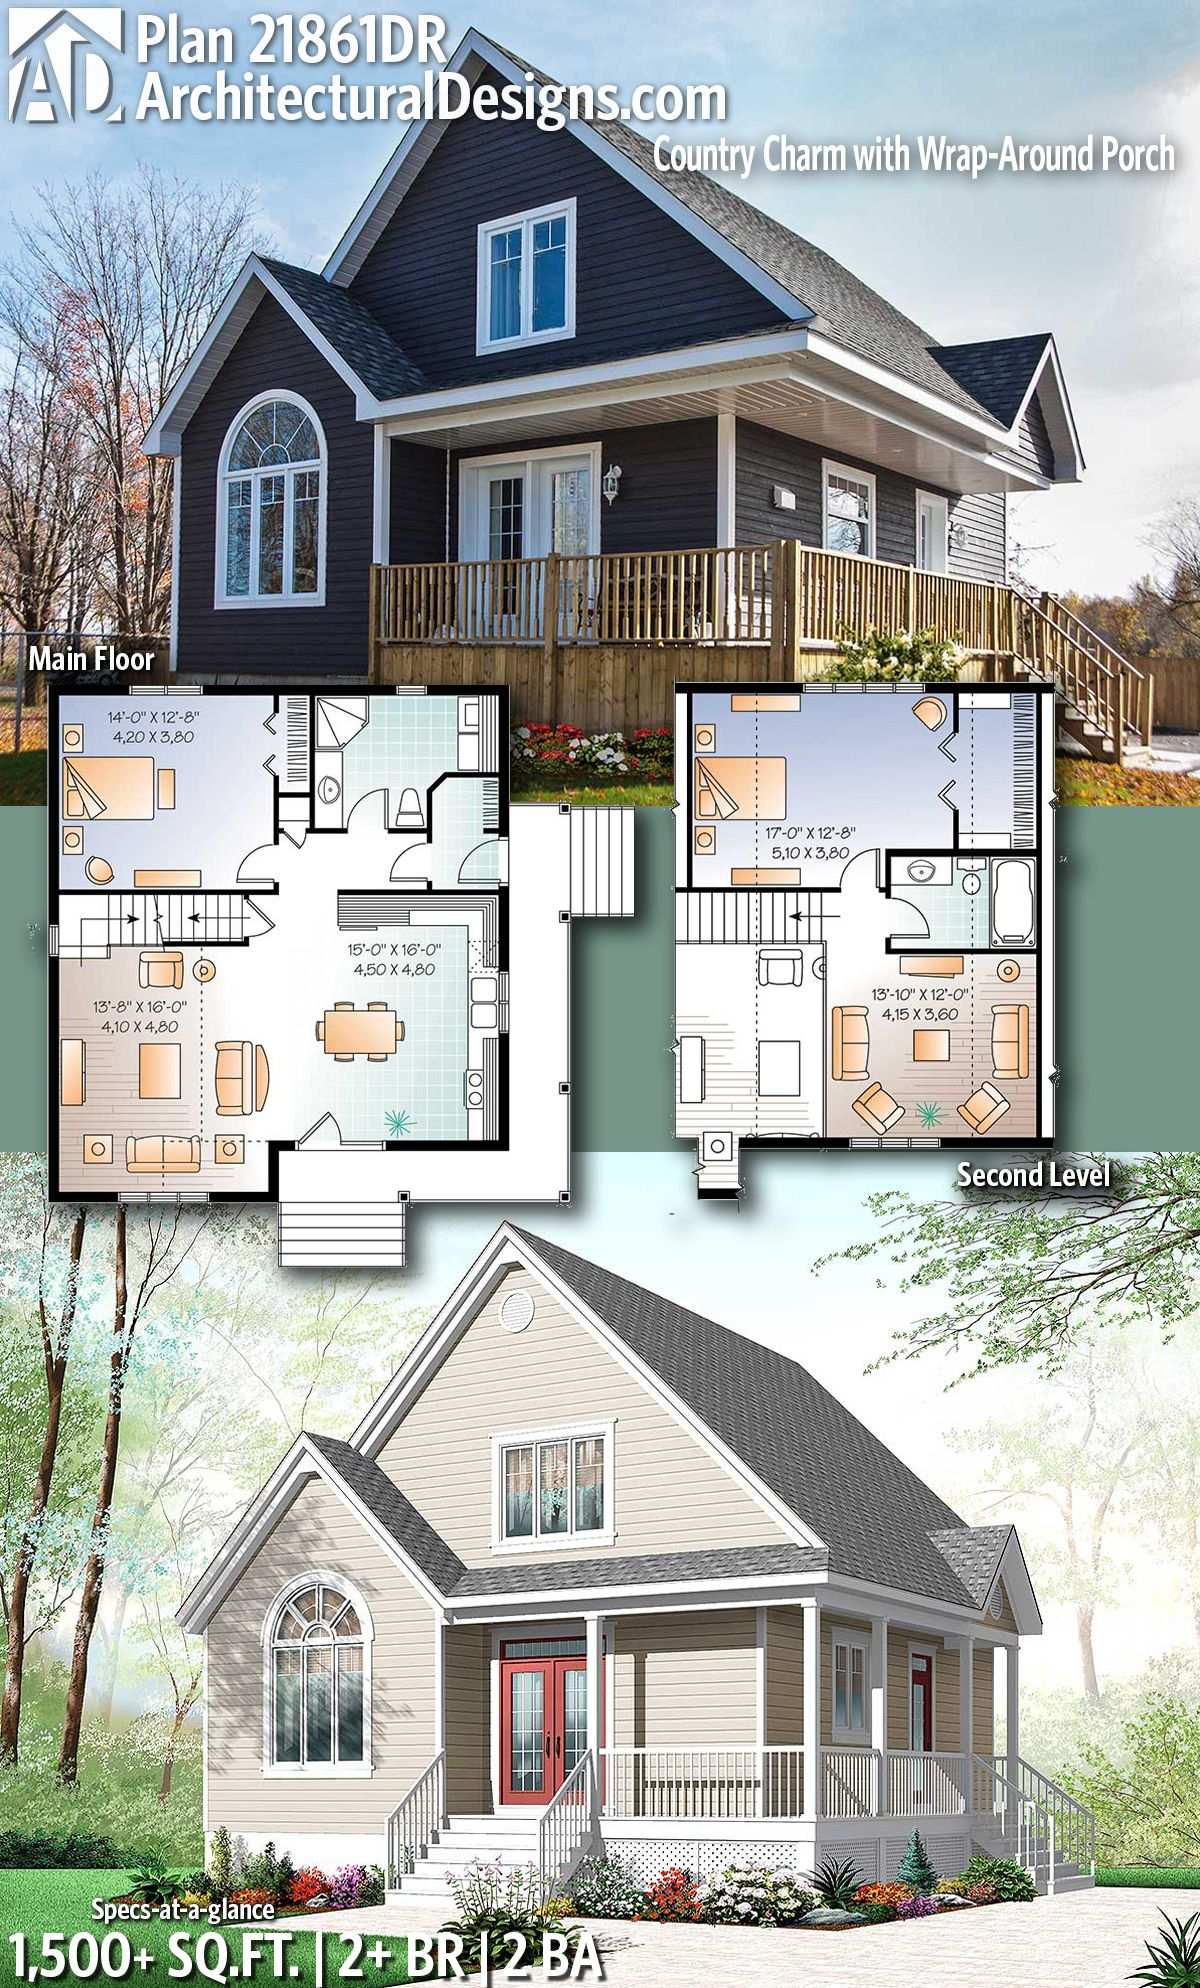 Architectural designs house plan dr gives you beds baths and over sq ft of heated living space ready when are also rh pinterest